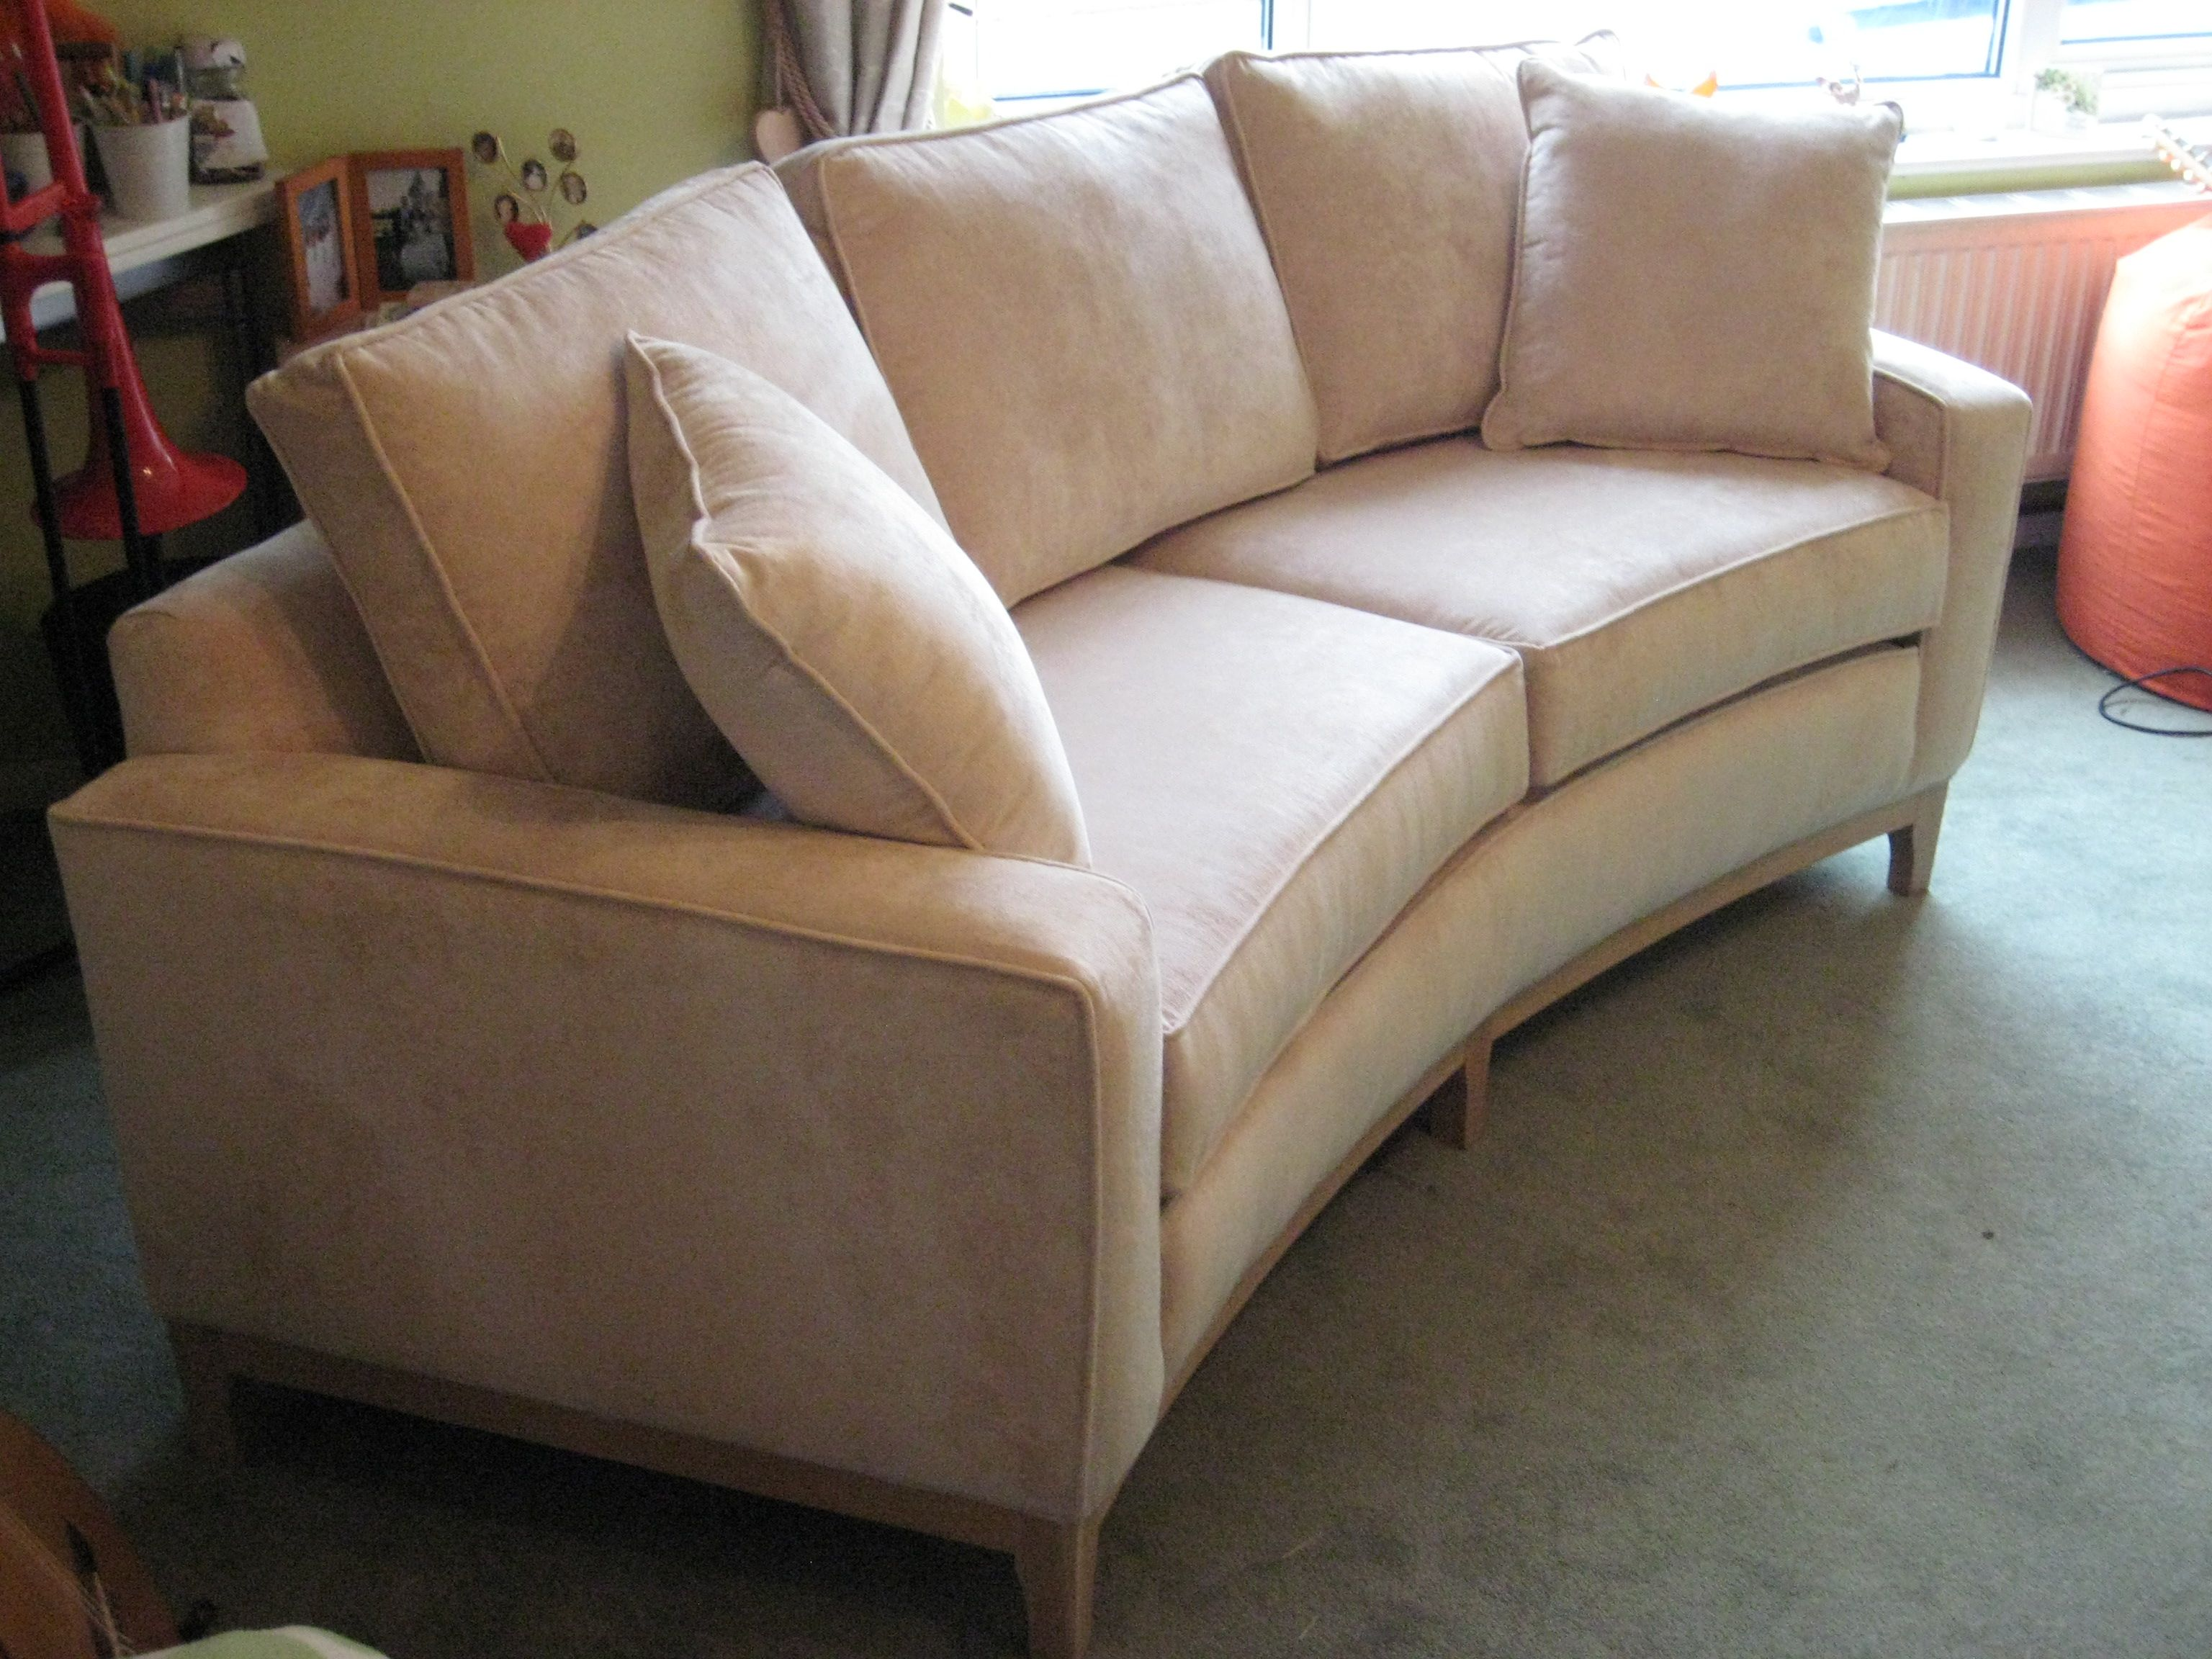 213 Cm X 101 Cm Curved Sofa Two Base And Three Back